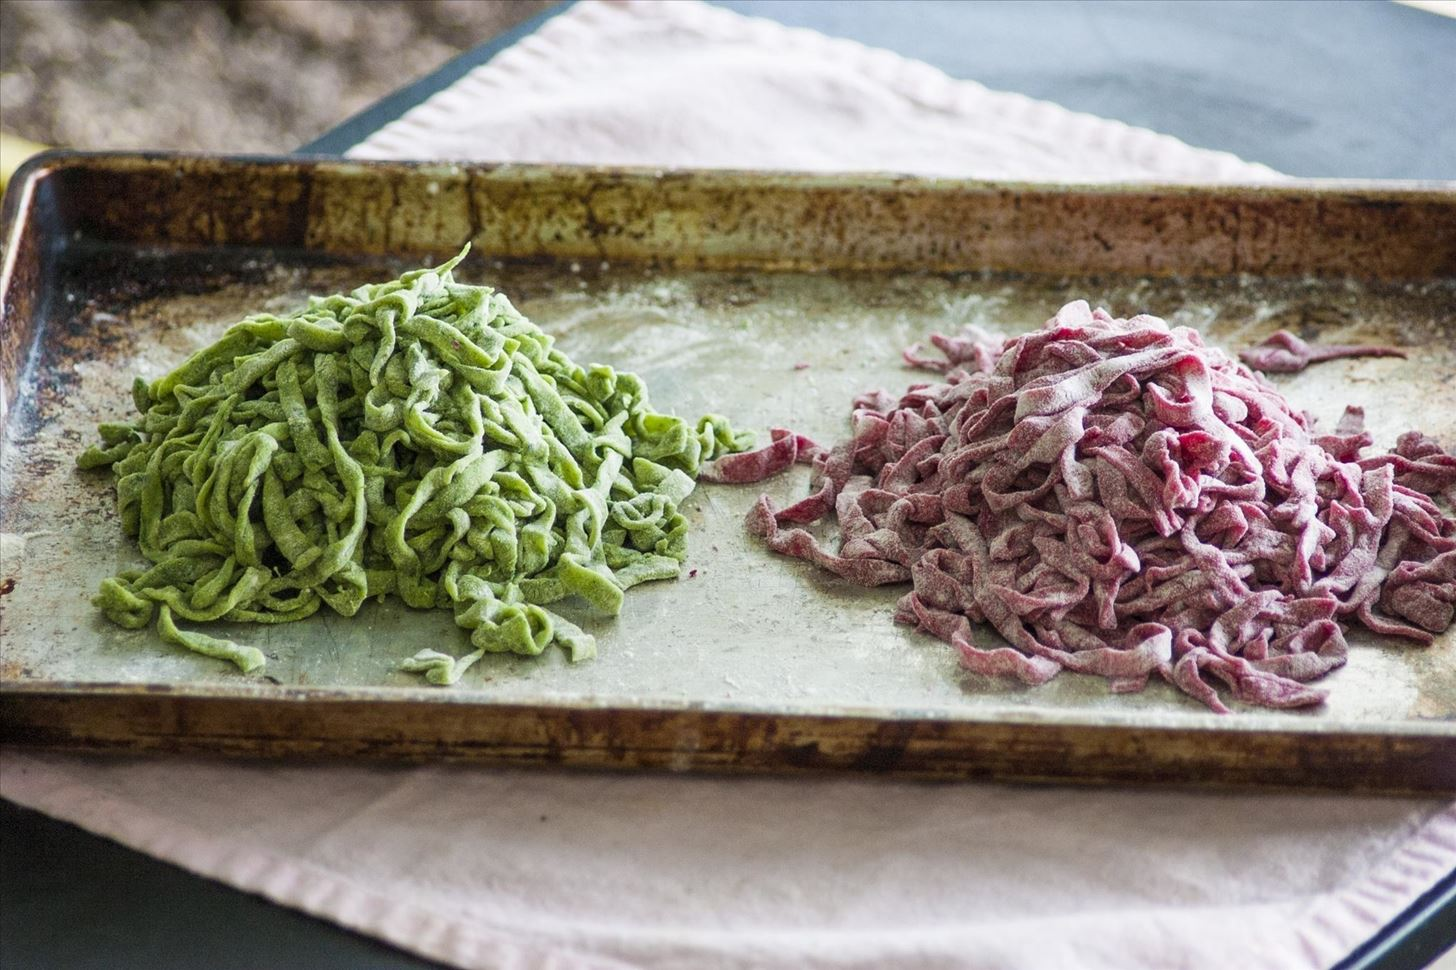 How to Make Naturally Colored Pasta with Beets, Spinach, Squid Ink, & More